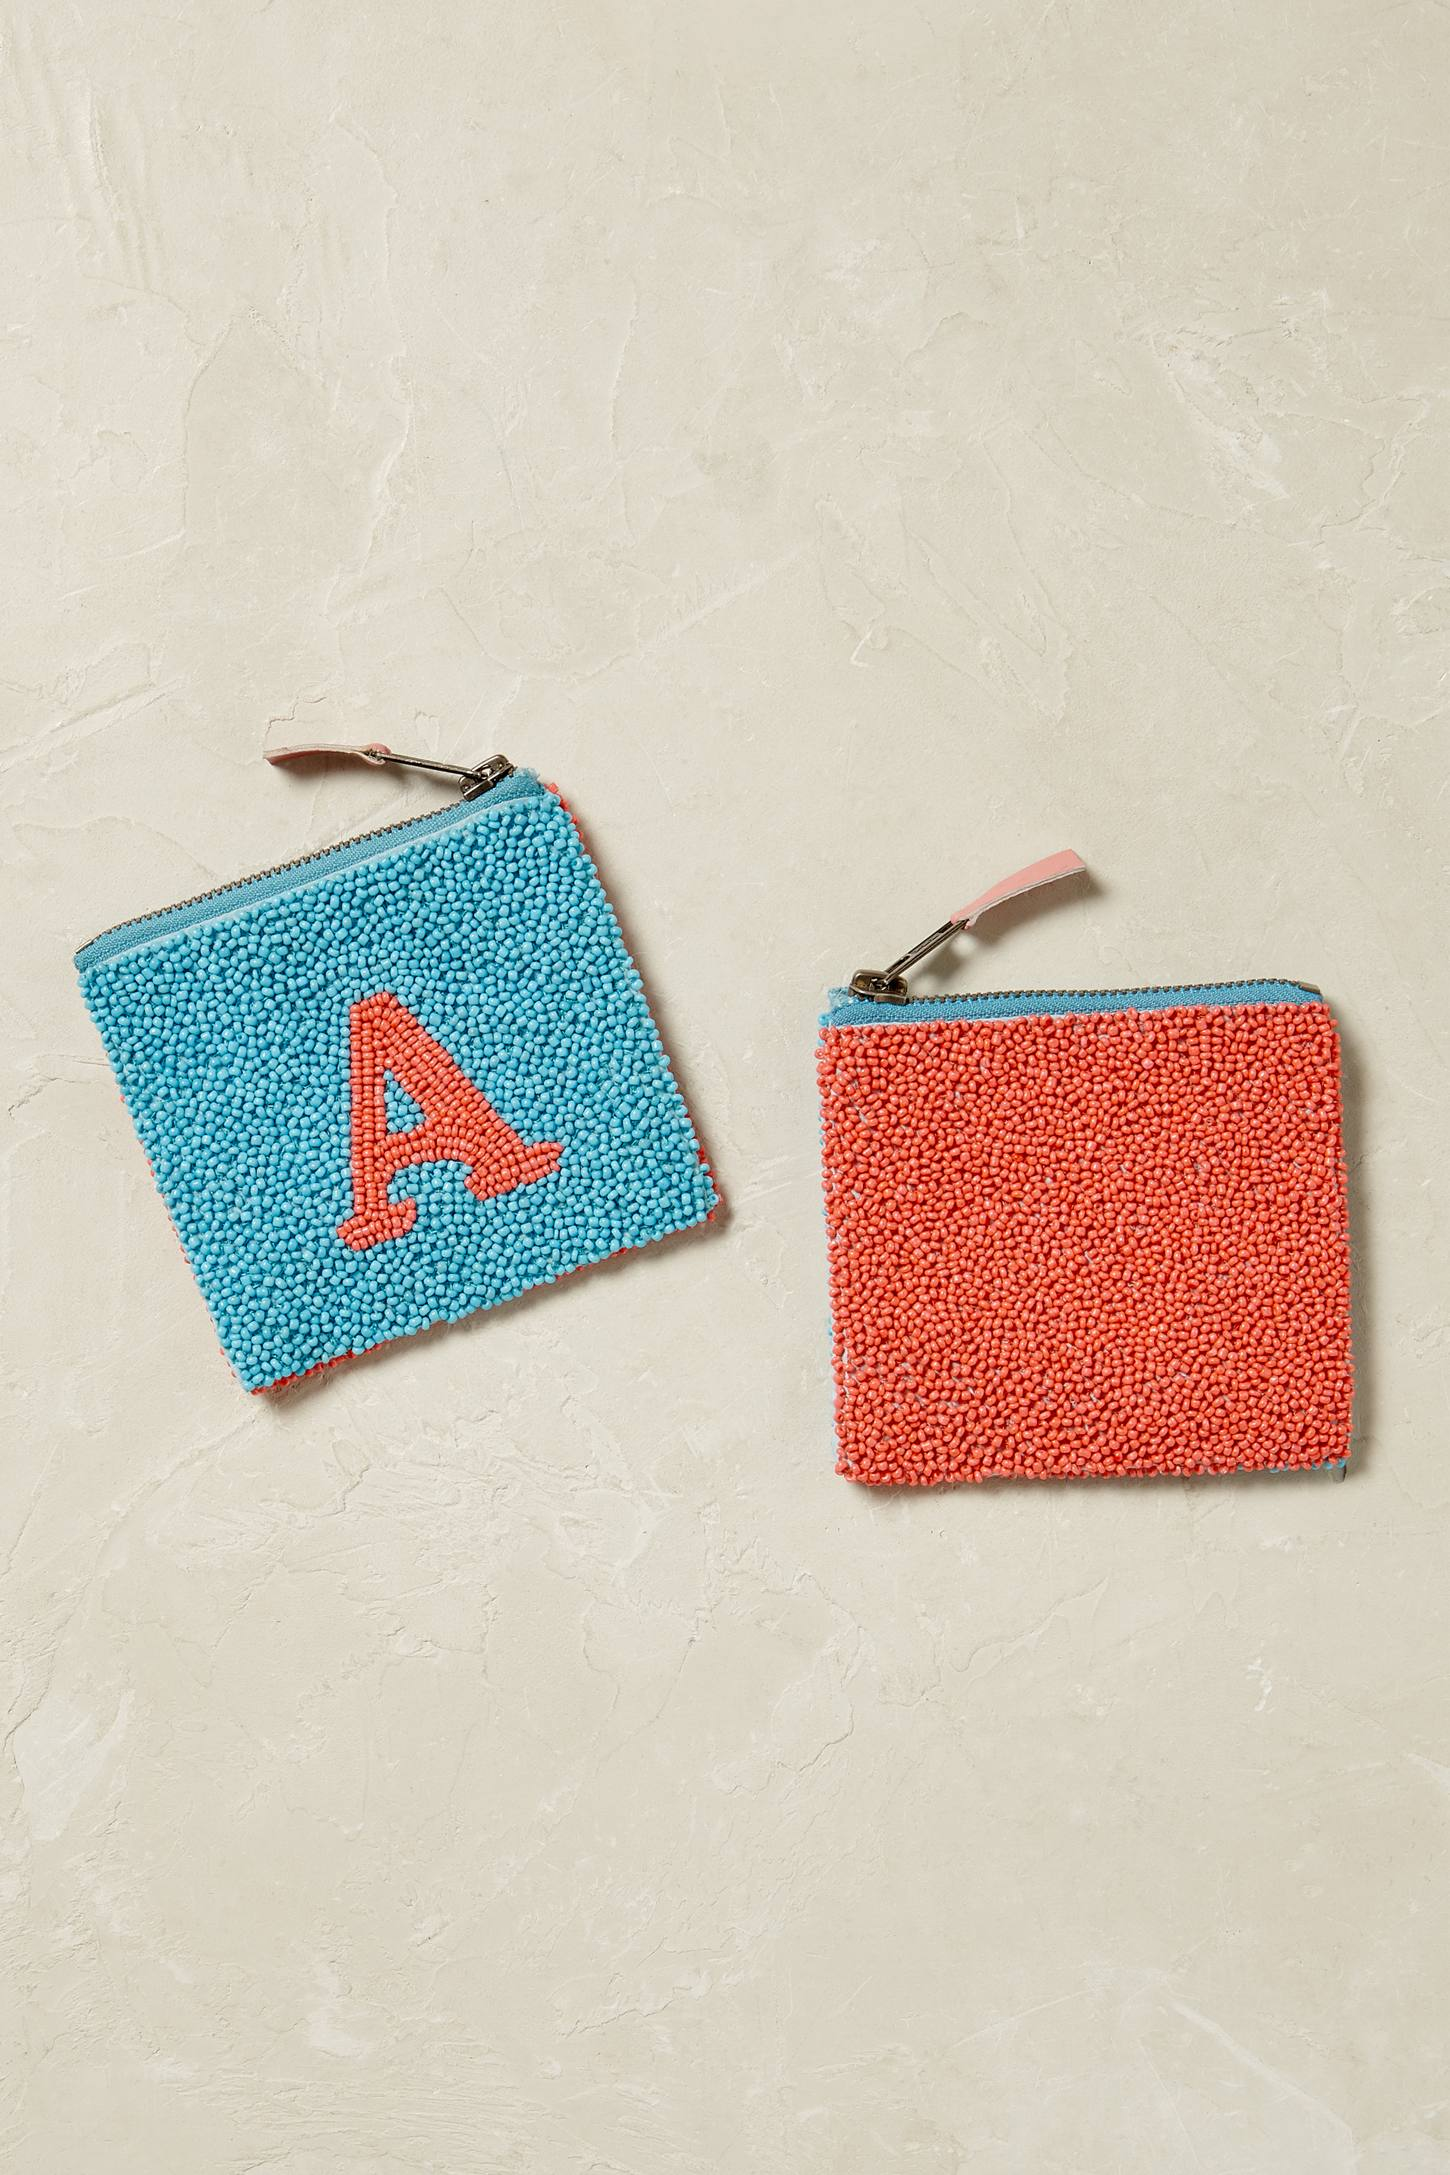 Slide View: 2: Monogram Beaded Coin Purse